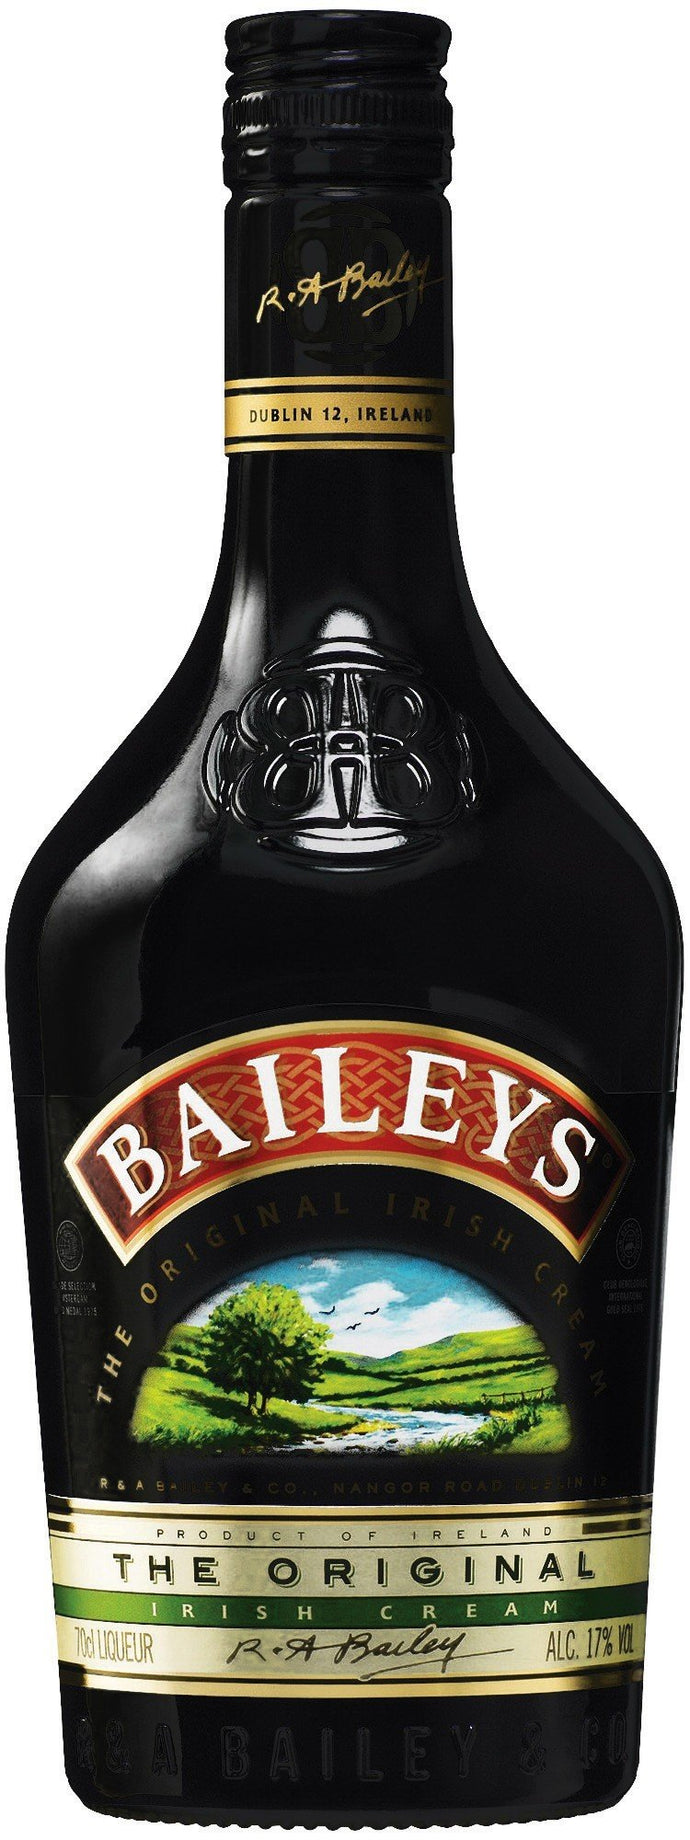 Baileys Irish Cream Liqueur 1.75L Type: Liquor Categories: 1.75L, Irish Cream, Liqueur, quantity high enough for online, size_1.75L, subtype_Irish Cream, subtype_Liqueur. Buy today at Wine and Liquor Mart Poughkeepsie